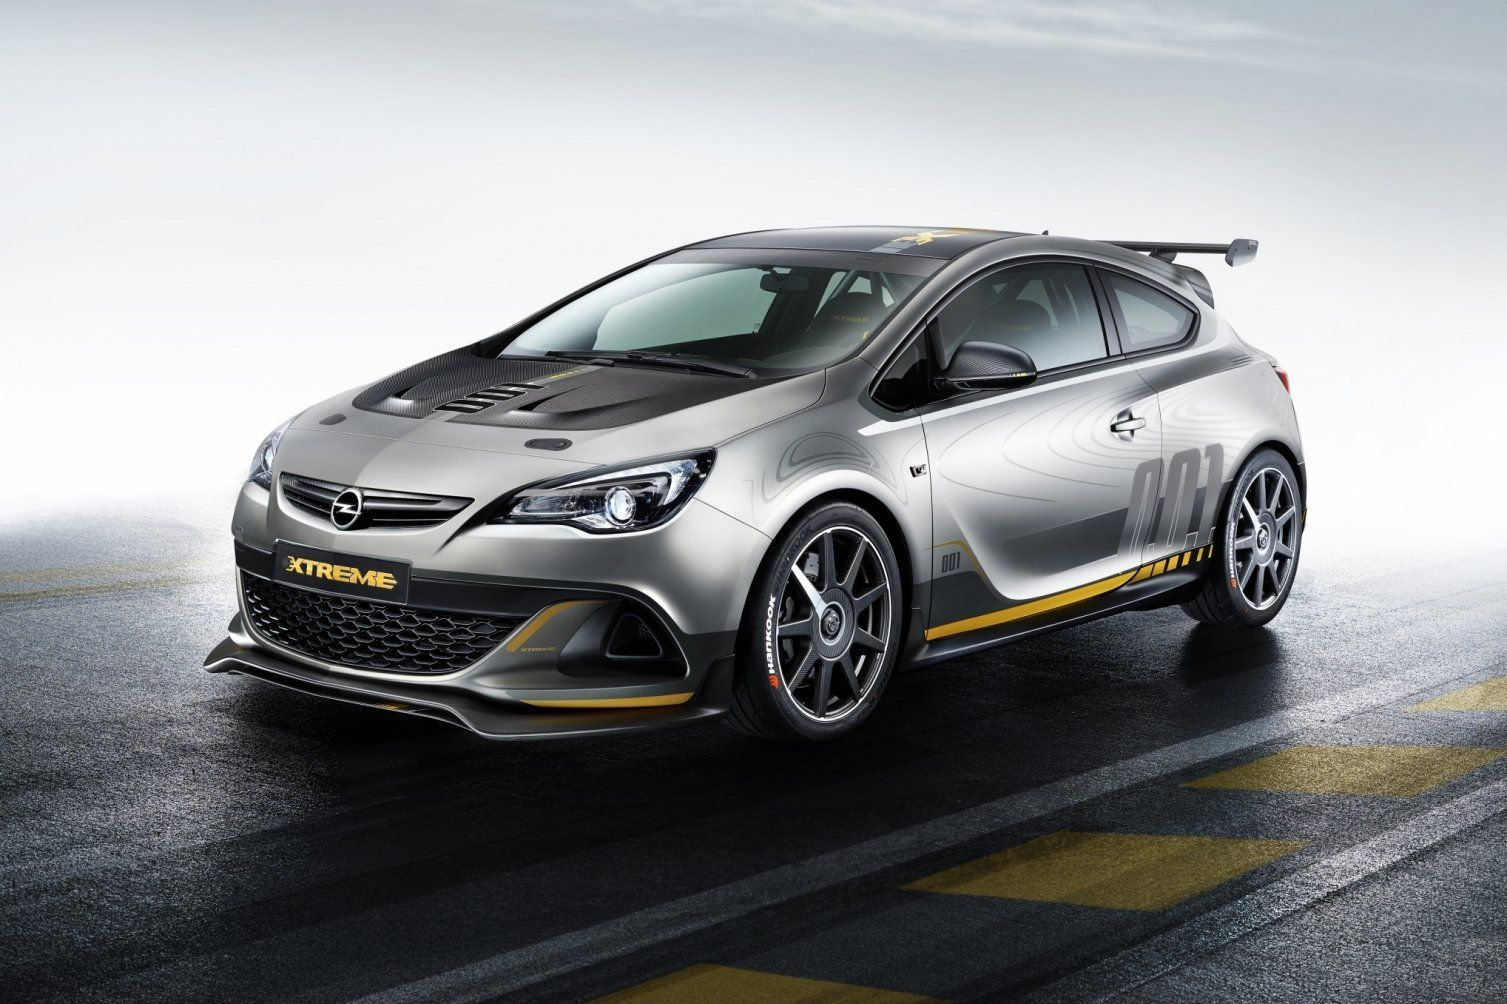 New New Astra 2020 Exterior And Interior Review Car Price 2019 Opel Astra Opc Opel Astra Astra Opc